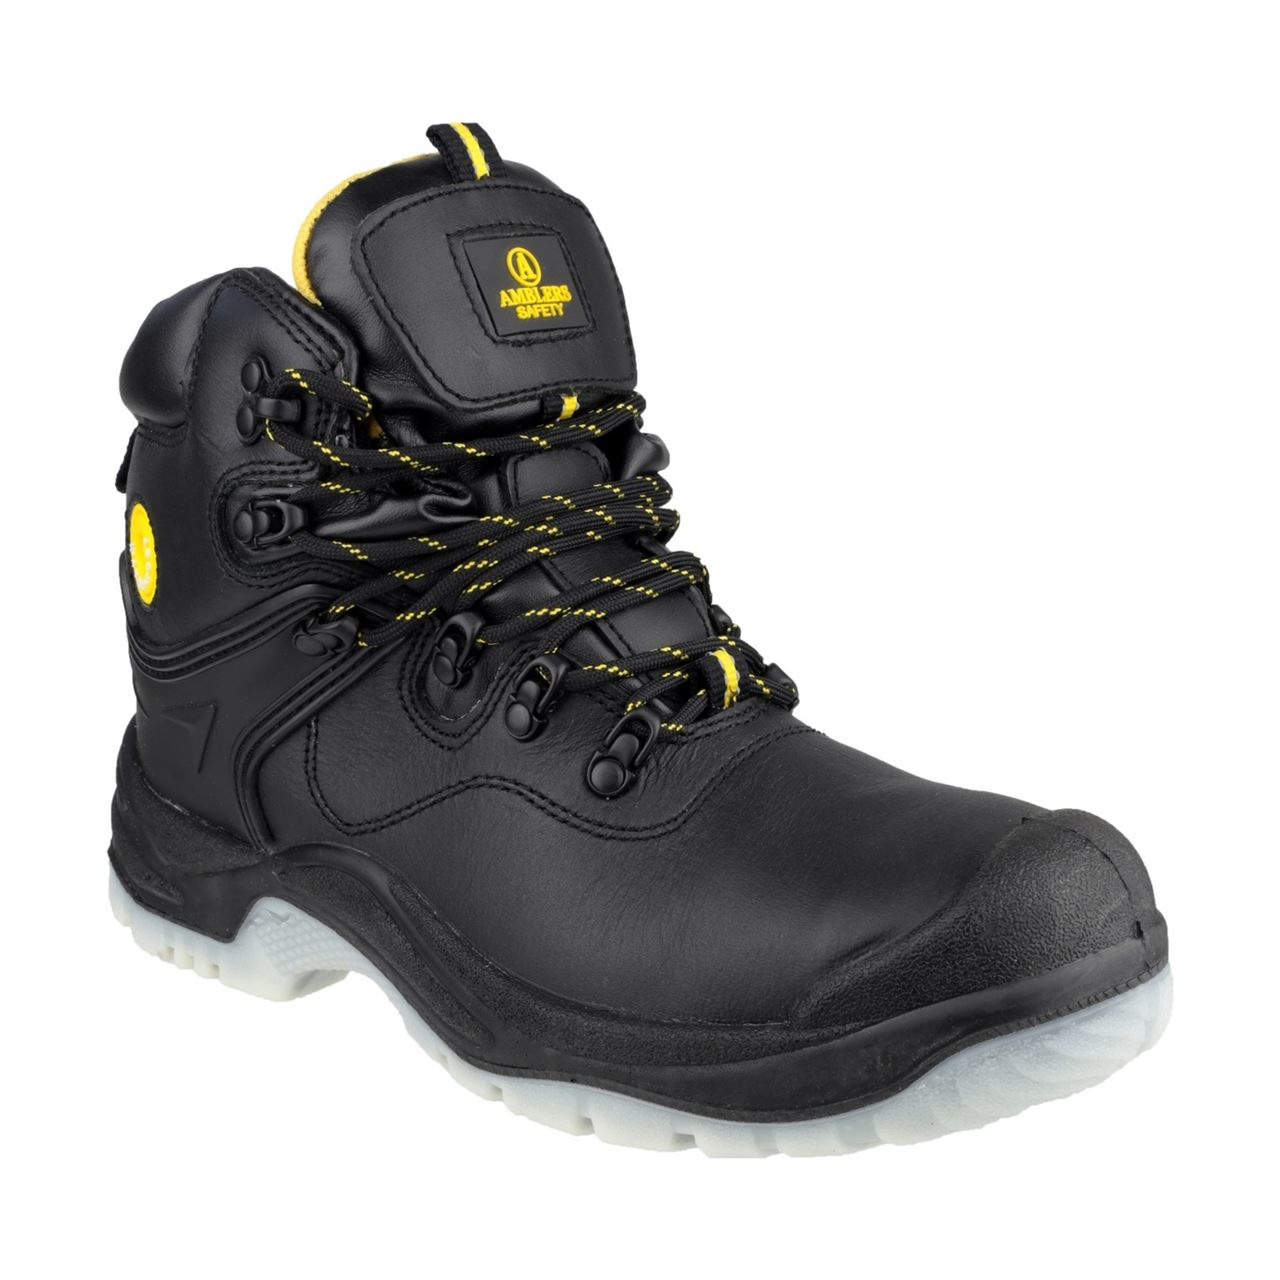 Amblers FS198 Unisex Waterproof S3 Pull On Safety Boot - Black